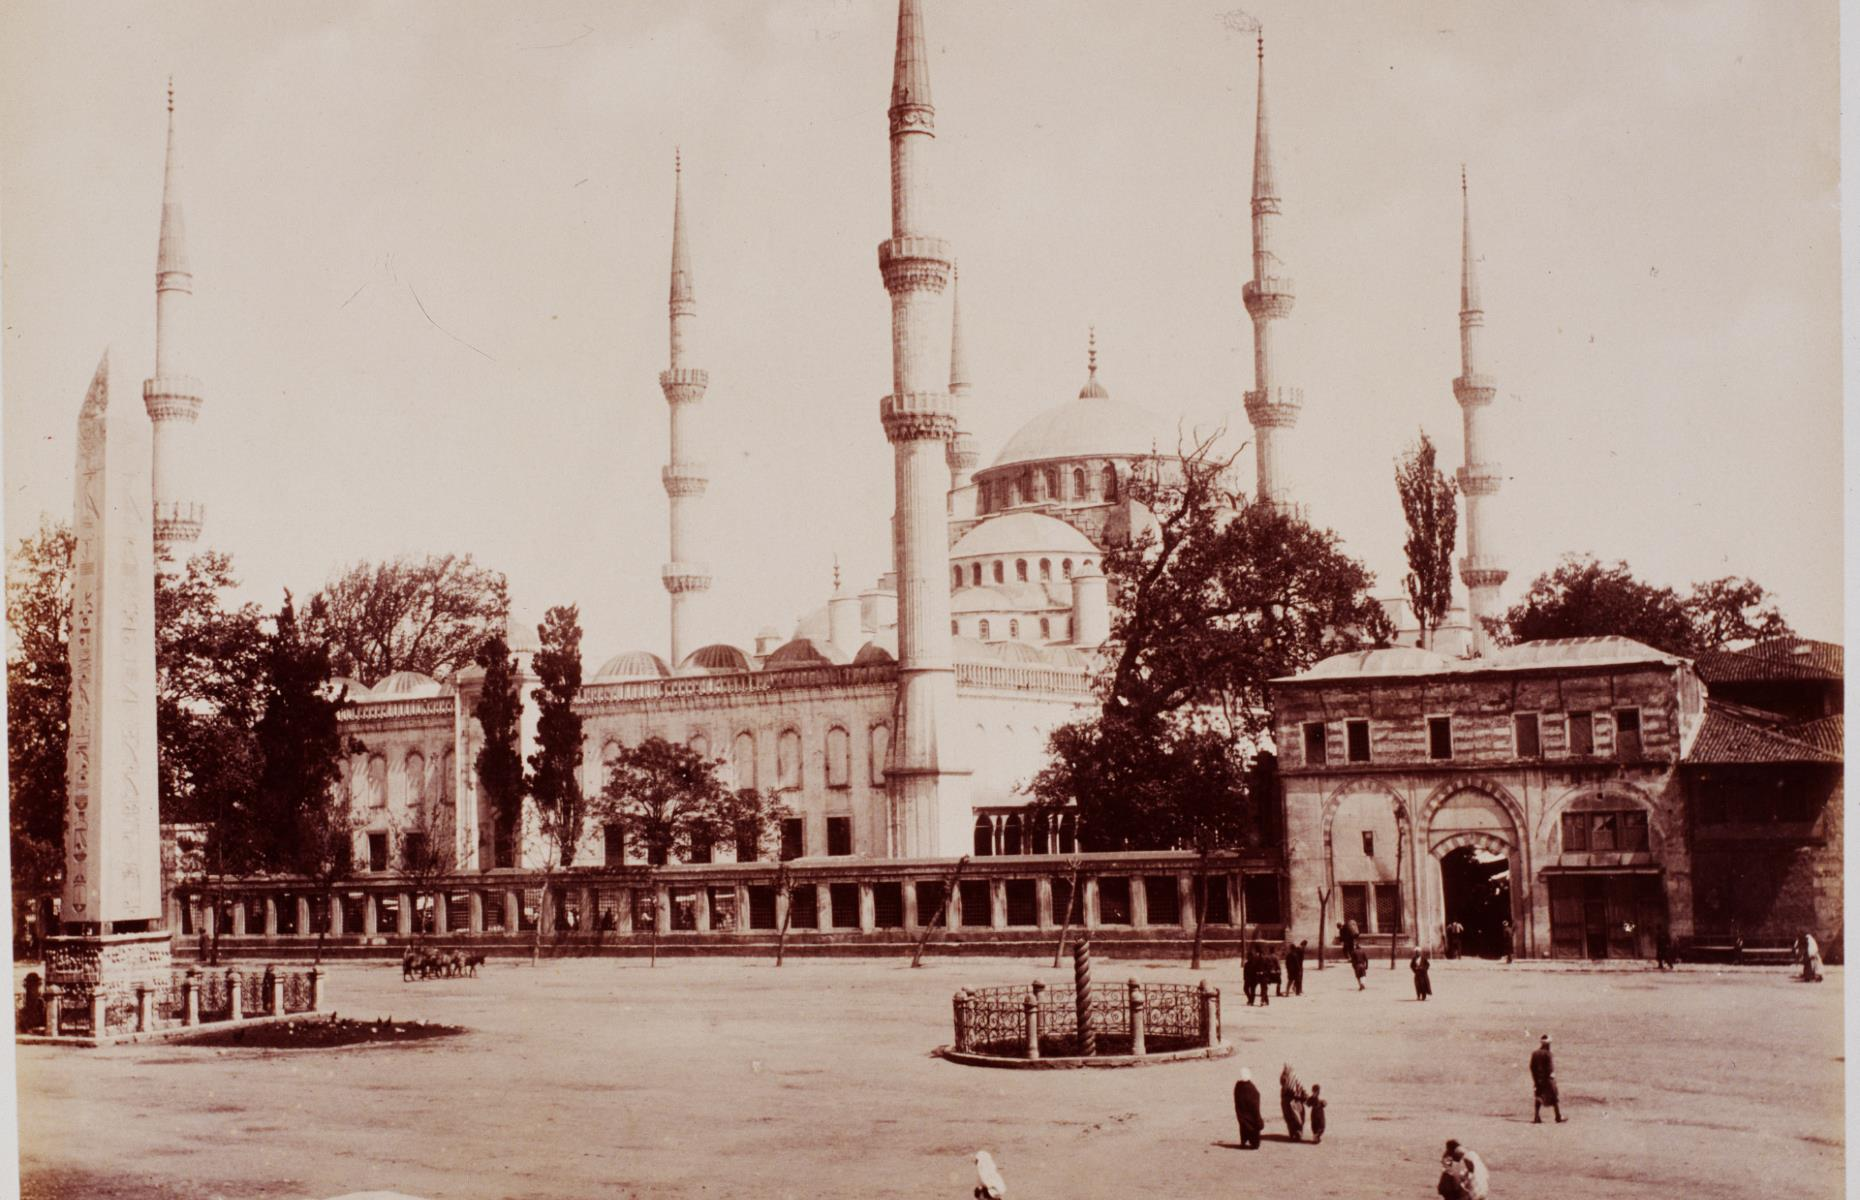 Slide 14 of 51: The Blue Mosque in Istanbul was built between 1609 and 1616, as a way for Sultan Ahmed I to reassert the Ottoman Empire's power following the Peace of Zsitvatorok (1606) and losses in wars with Persia. With six minarets, five main domes and eight smaller domes, it's one of the most impressive surviving mosques from the Classical period. Today itusually attracts around five million people each year, although it hasn't always been so popular – in this photograph from 1899, the outside of the mosque looks eerily quiet.